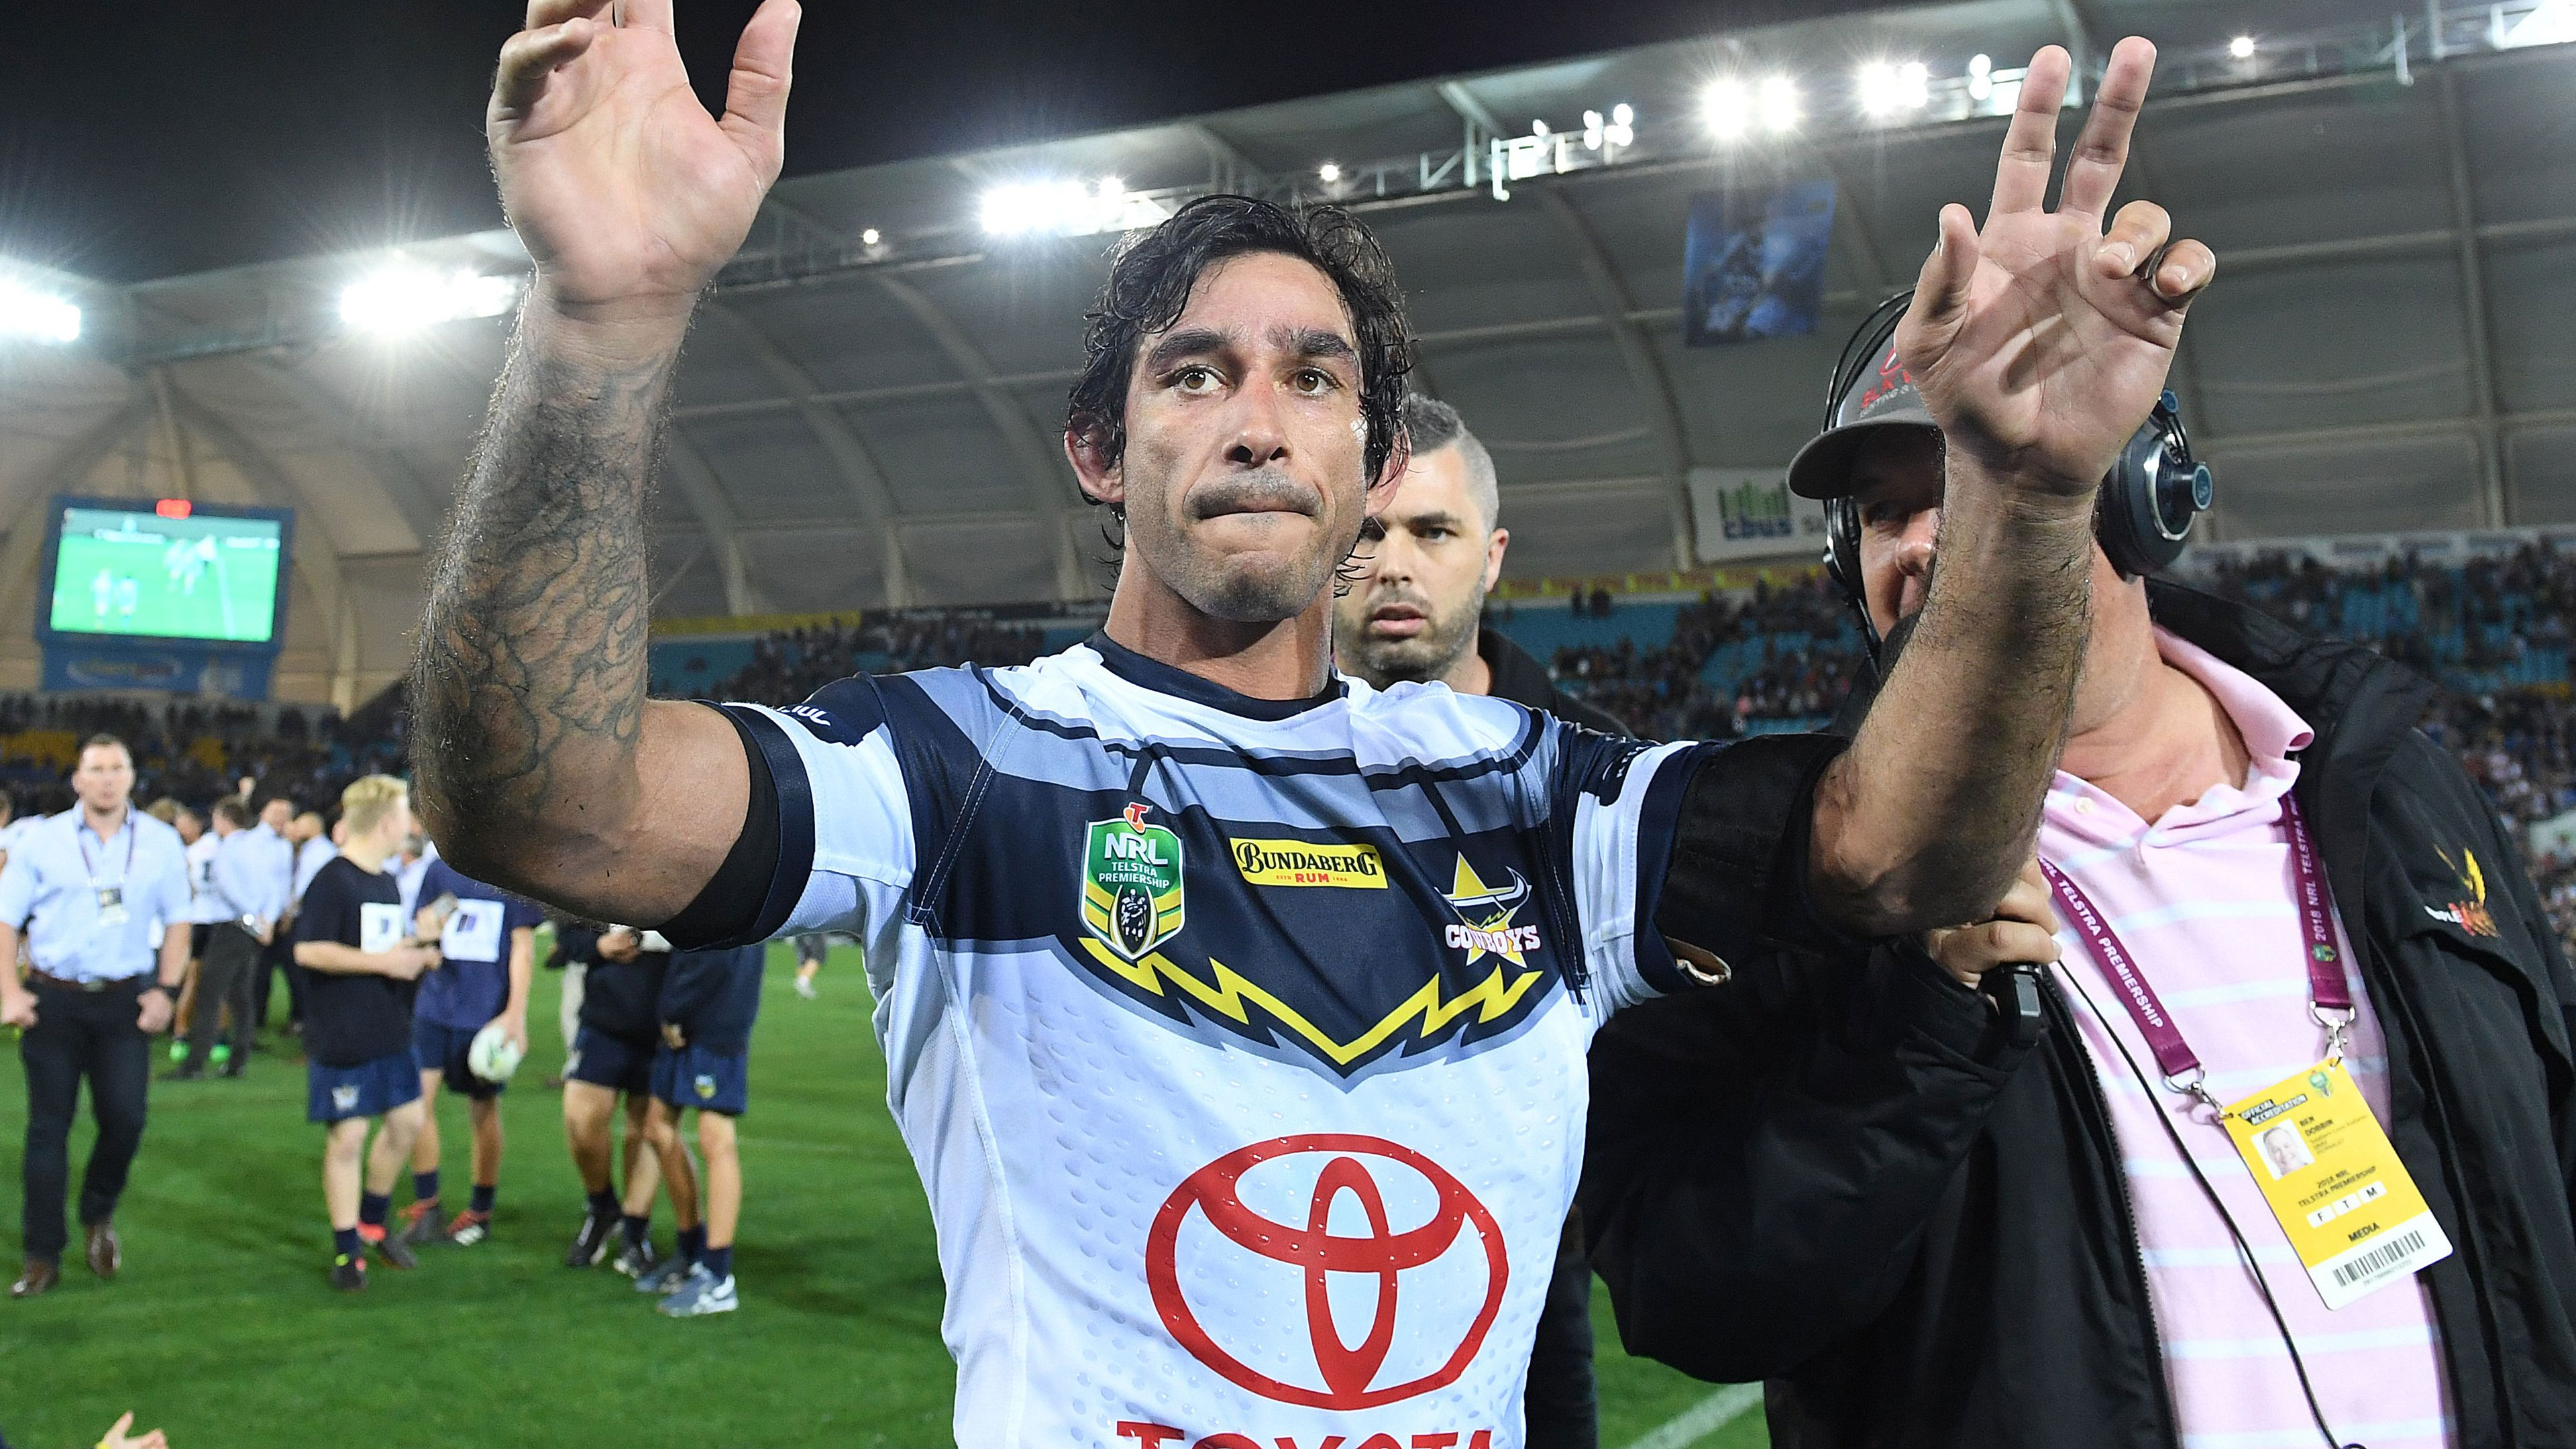 The Footy Show to present Johnathan Thurston special, 8.30pm Thursday